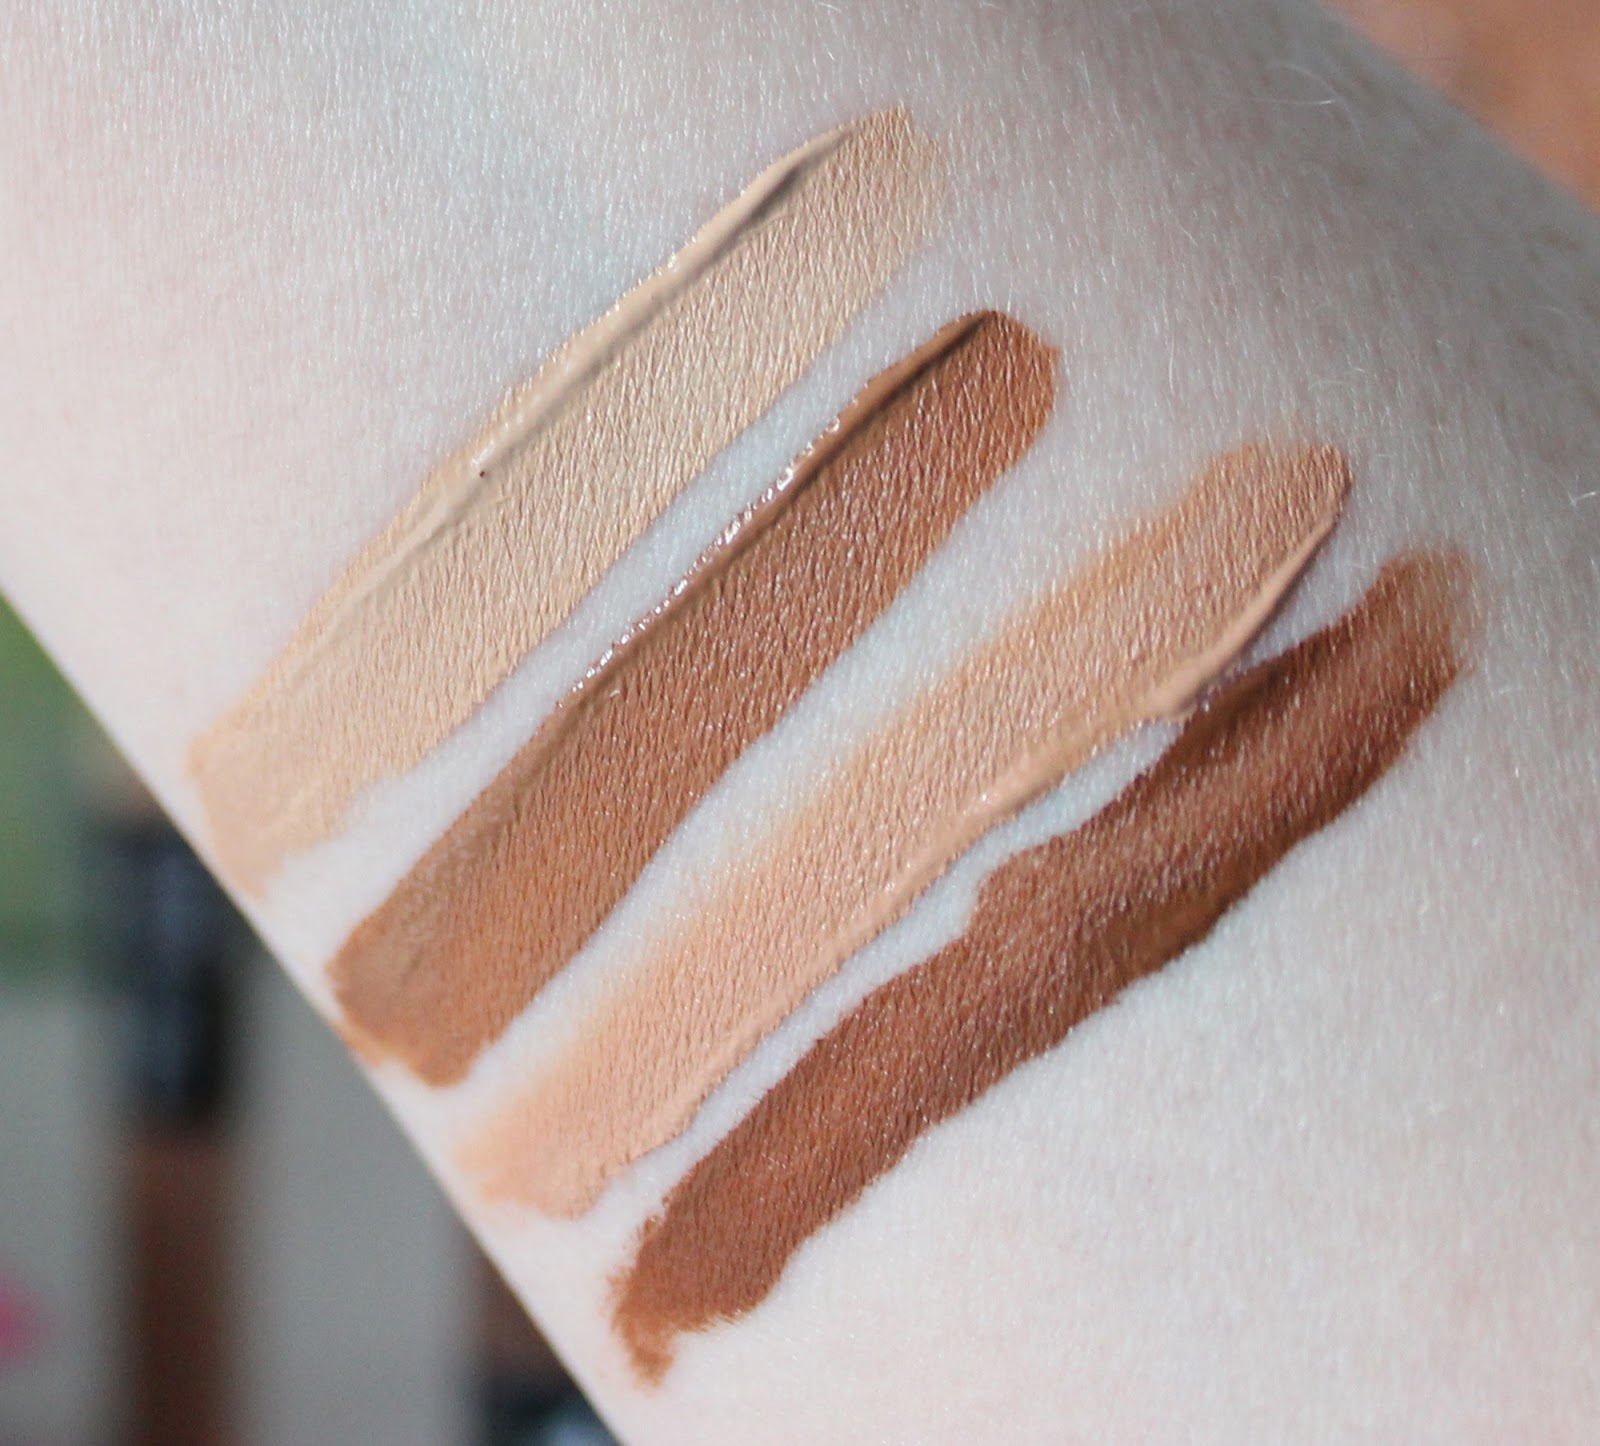 NYX sculpt and highlight sticks review and swatches shades three and four